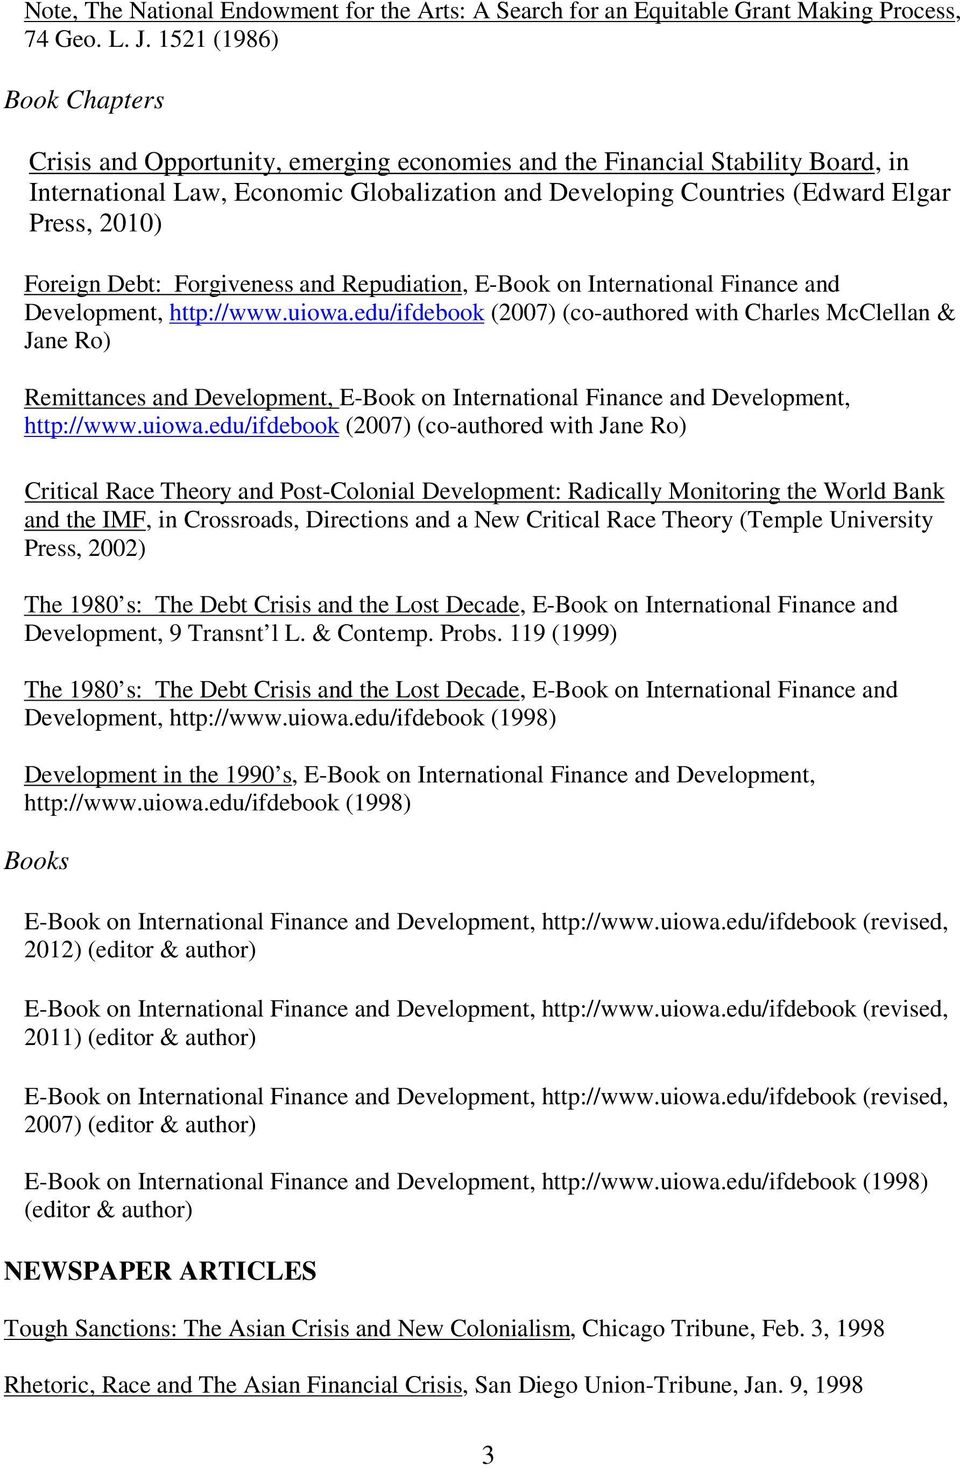 2010) Foreign Debt: Forgiveness and Repudiation, E-Book on International Finance and Development, http://www.uiowa.